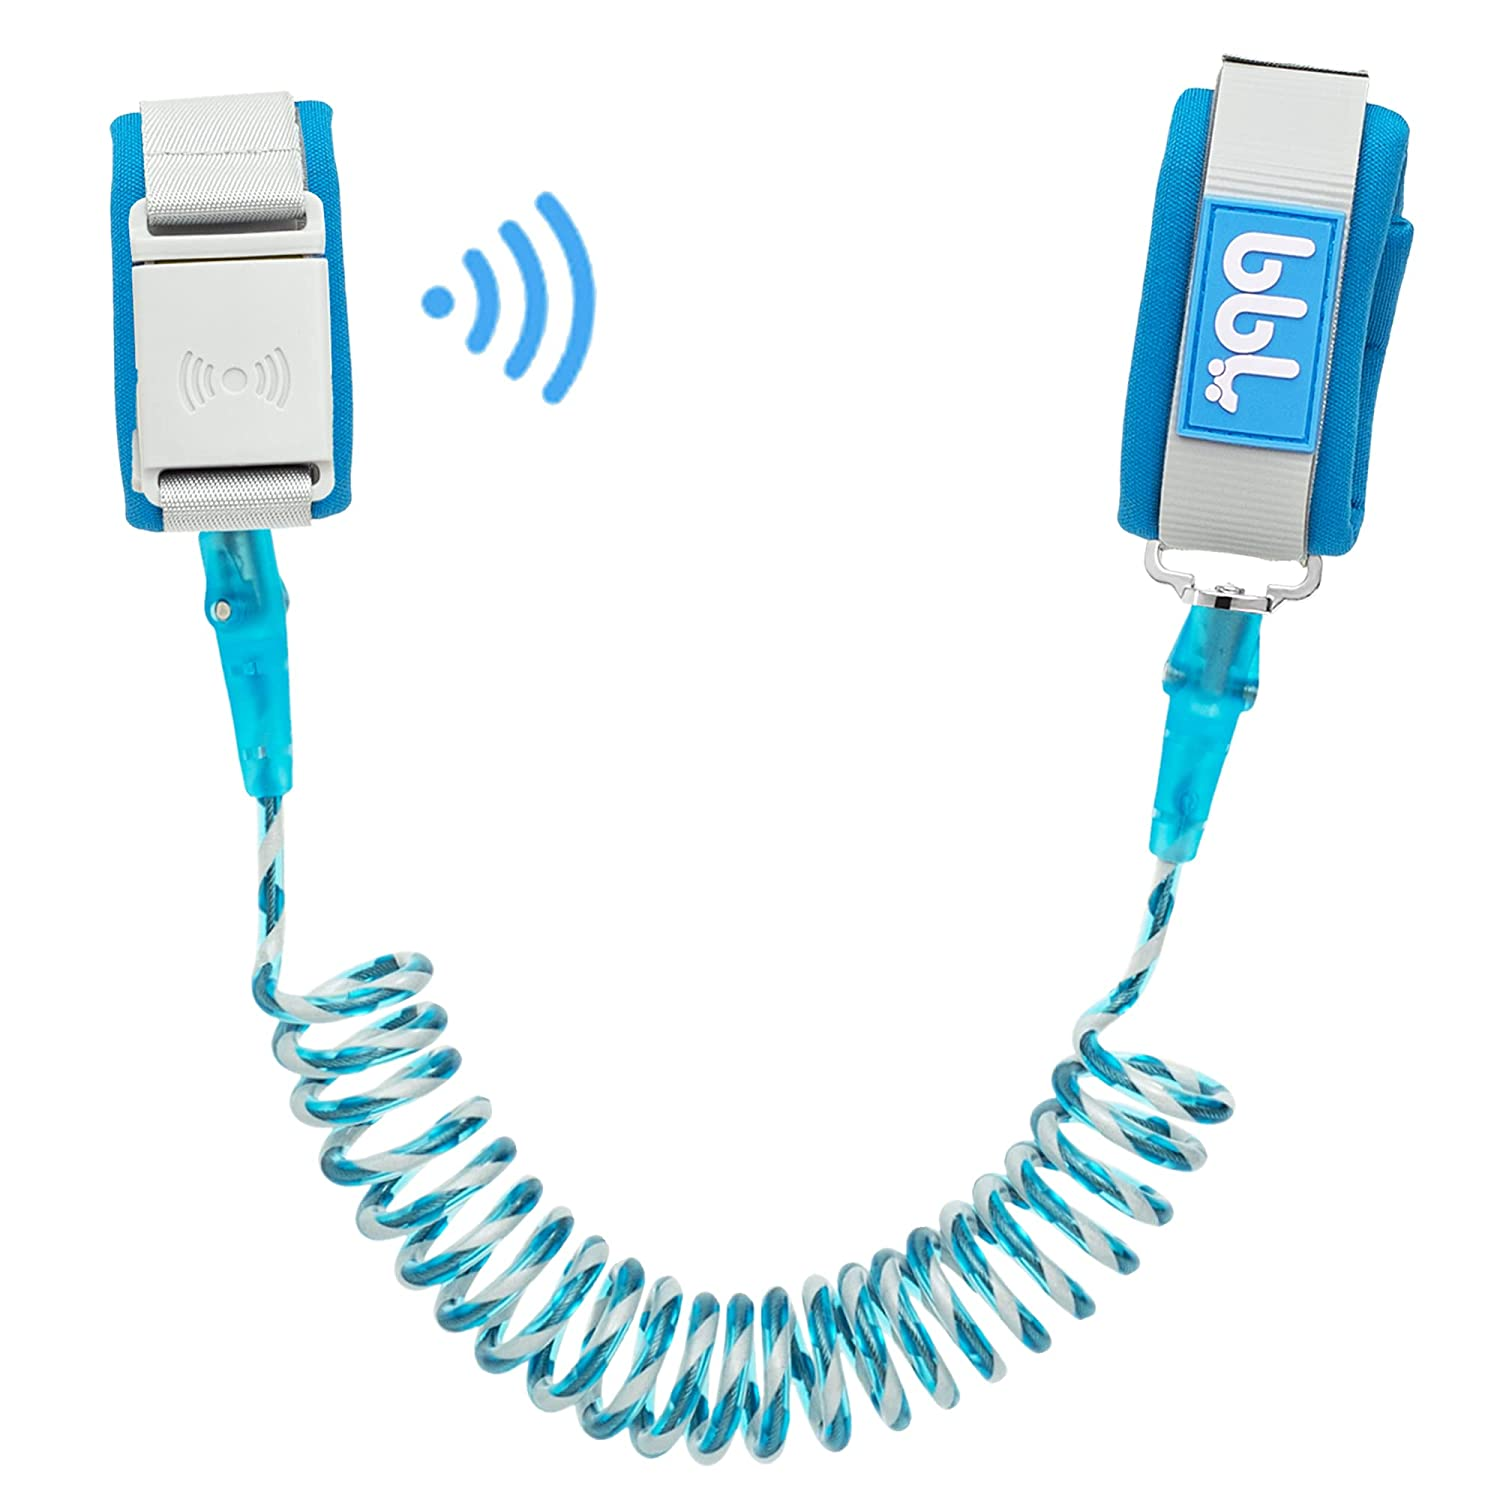 WSZCML Anti Lost Wrist Link with Magnetic Induction Lock,Toddler Wrist Leash for Kids Child Safety Harness Baby Proofing Wristband with Reflective Strip(Blue)